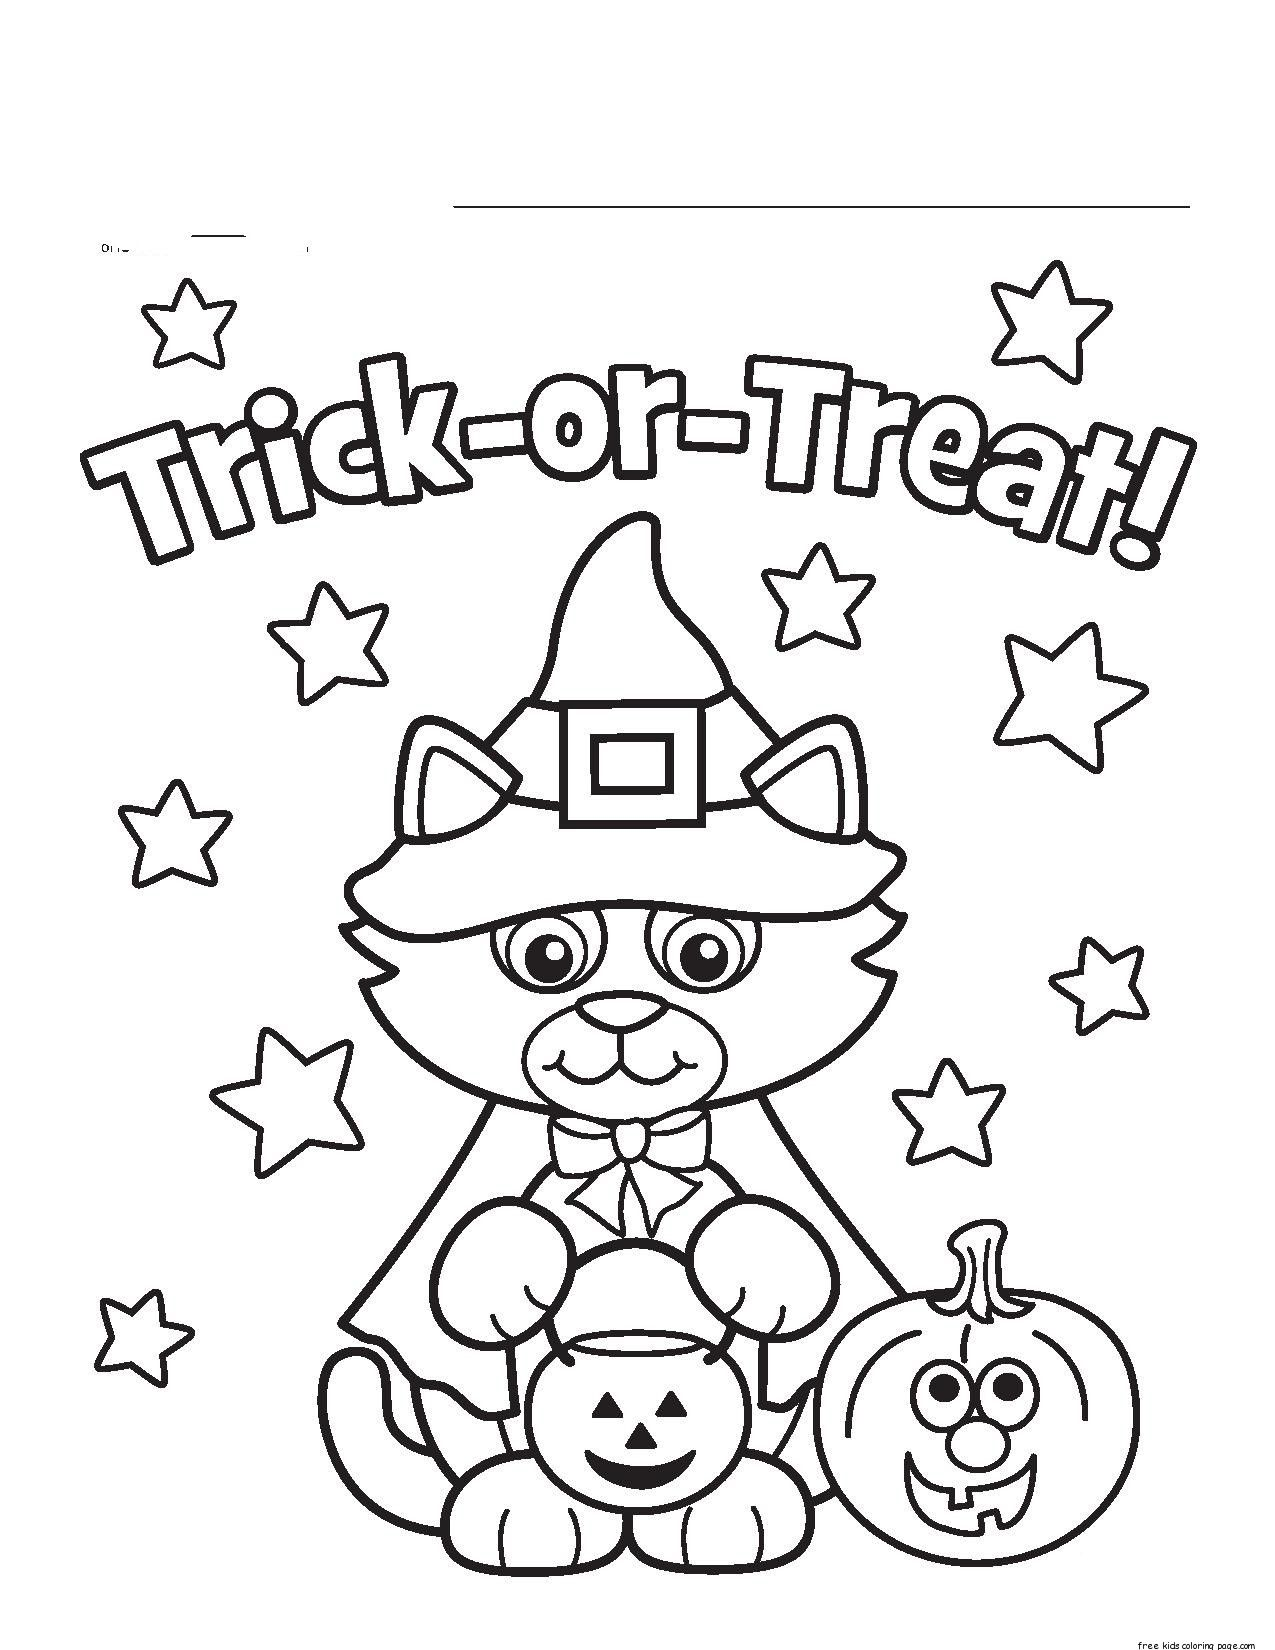 Free printable halloween coloring pages kids, Halloween